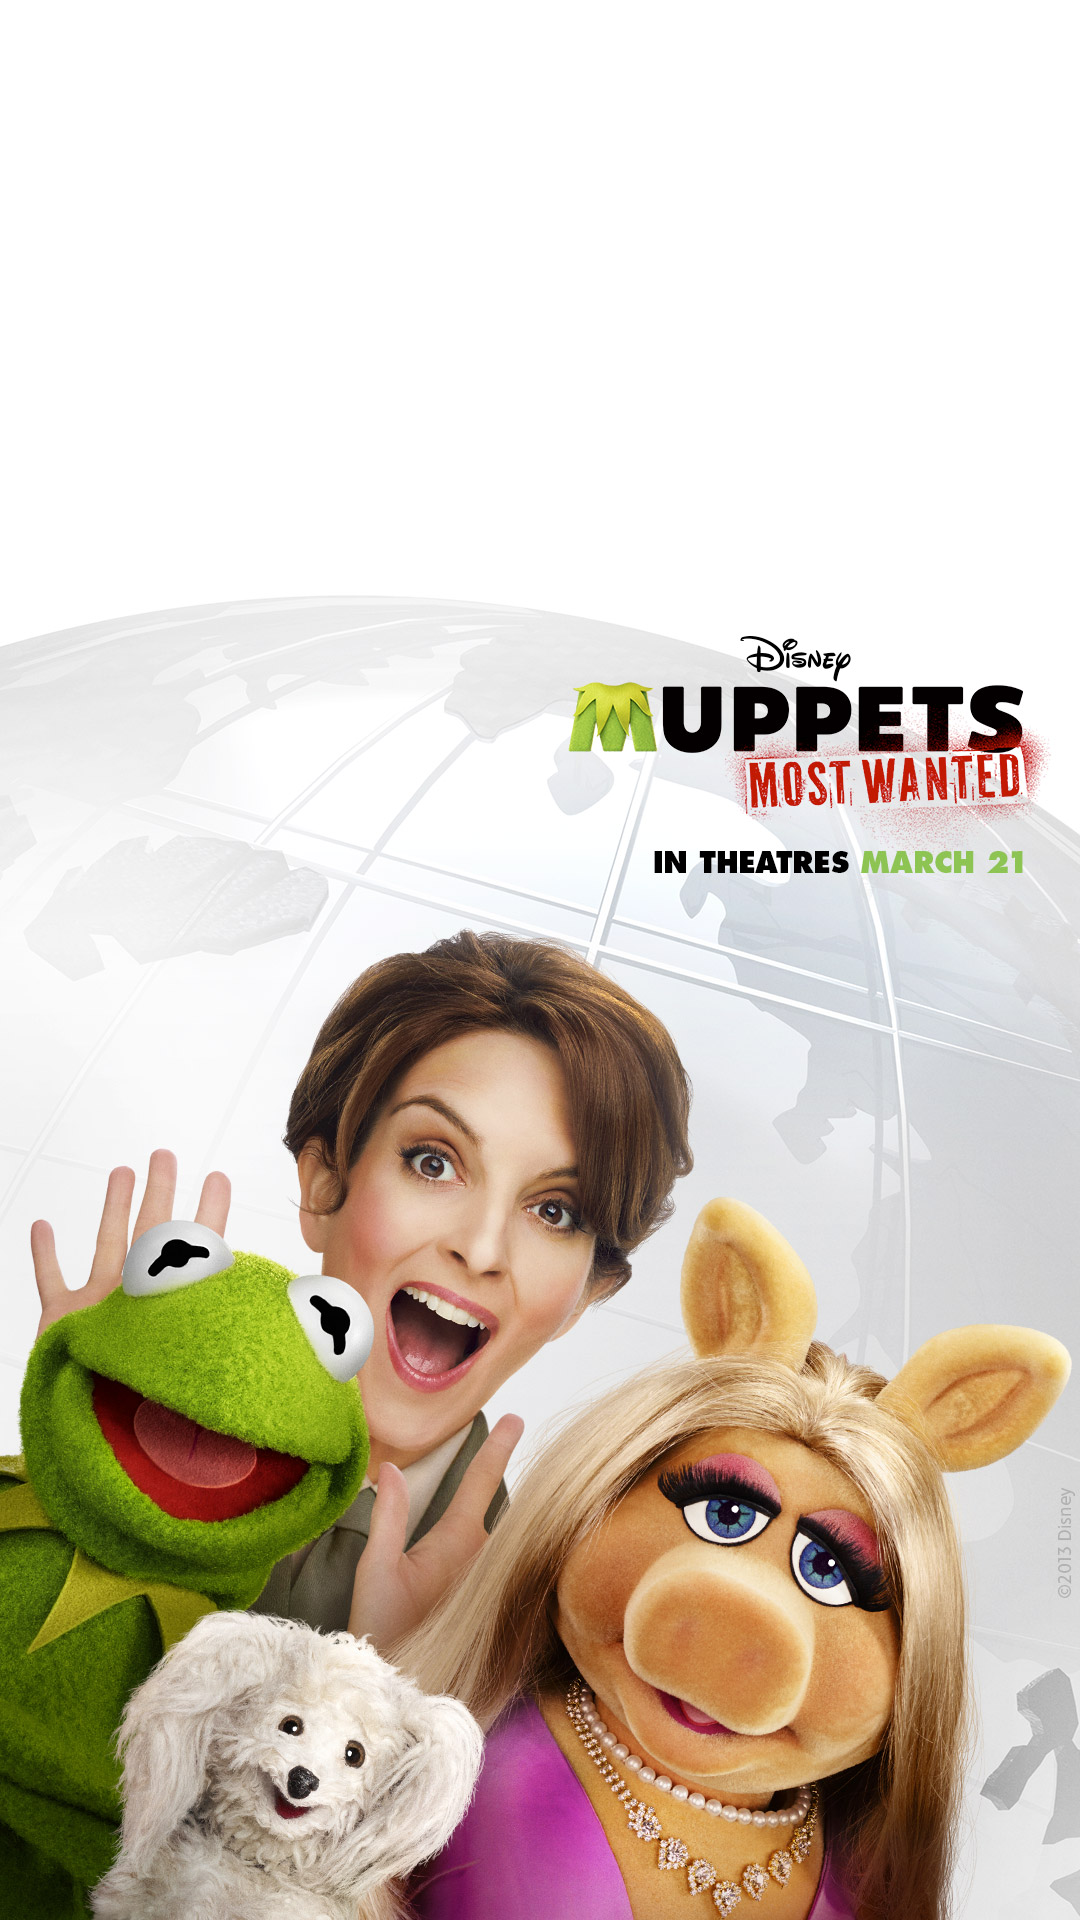 Muppets - Magazine cover